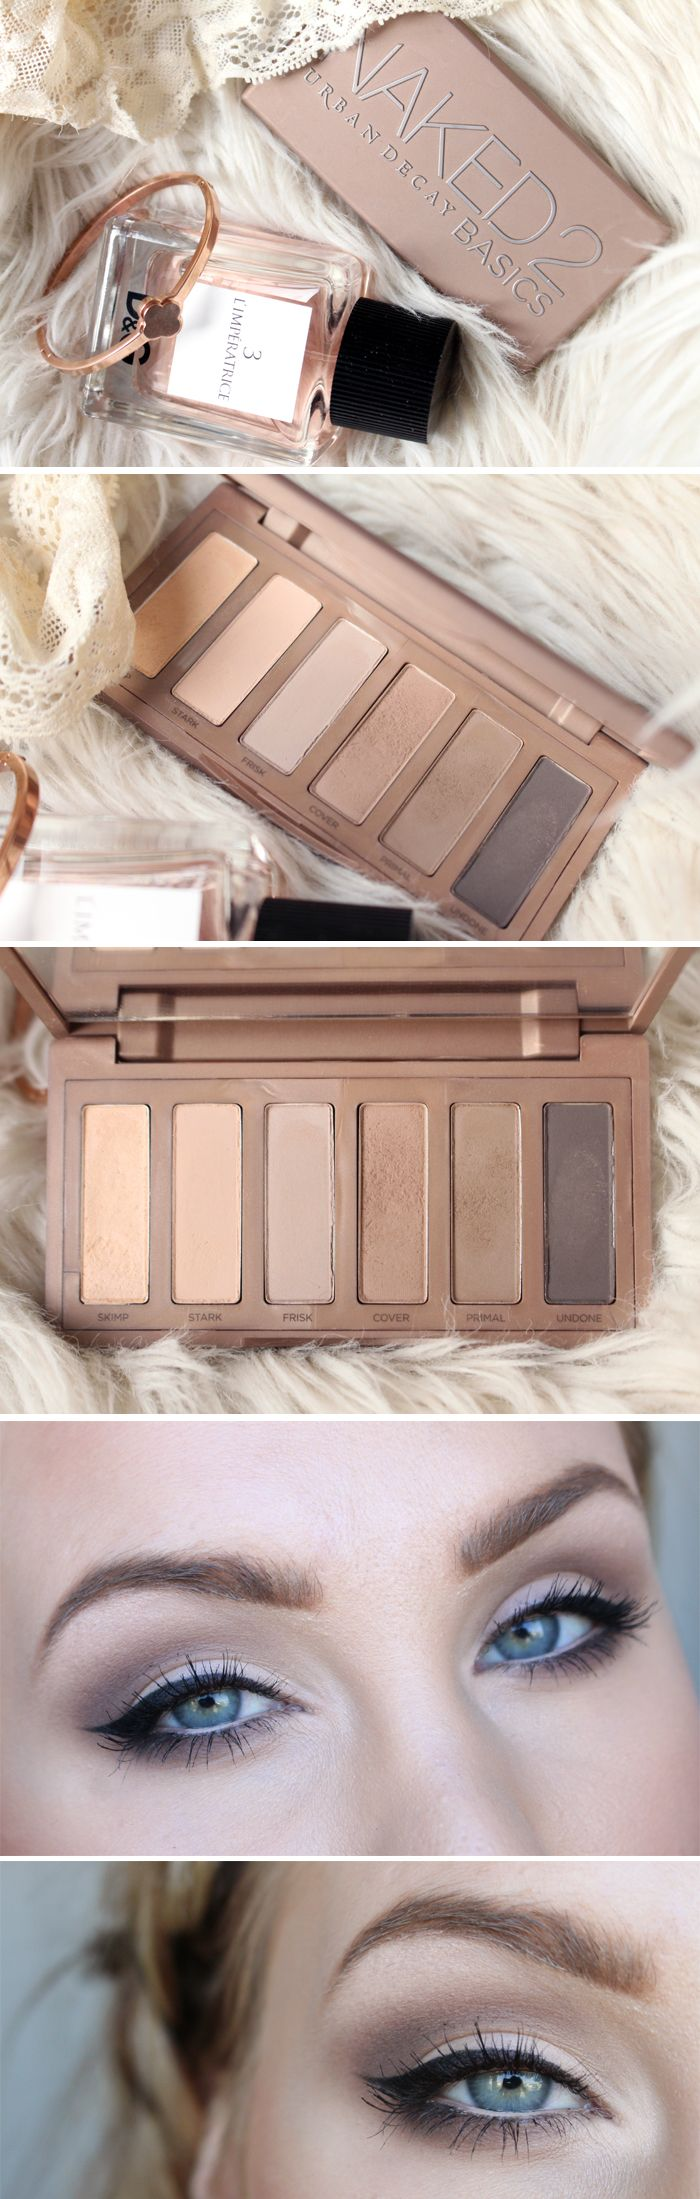 Nude Makeup by Urban Decay - Shop Now                                                                                                                                                                                 More